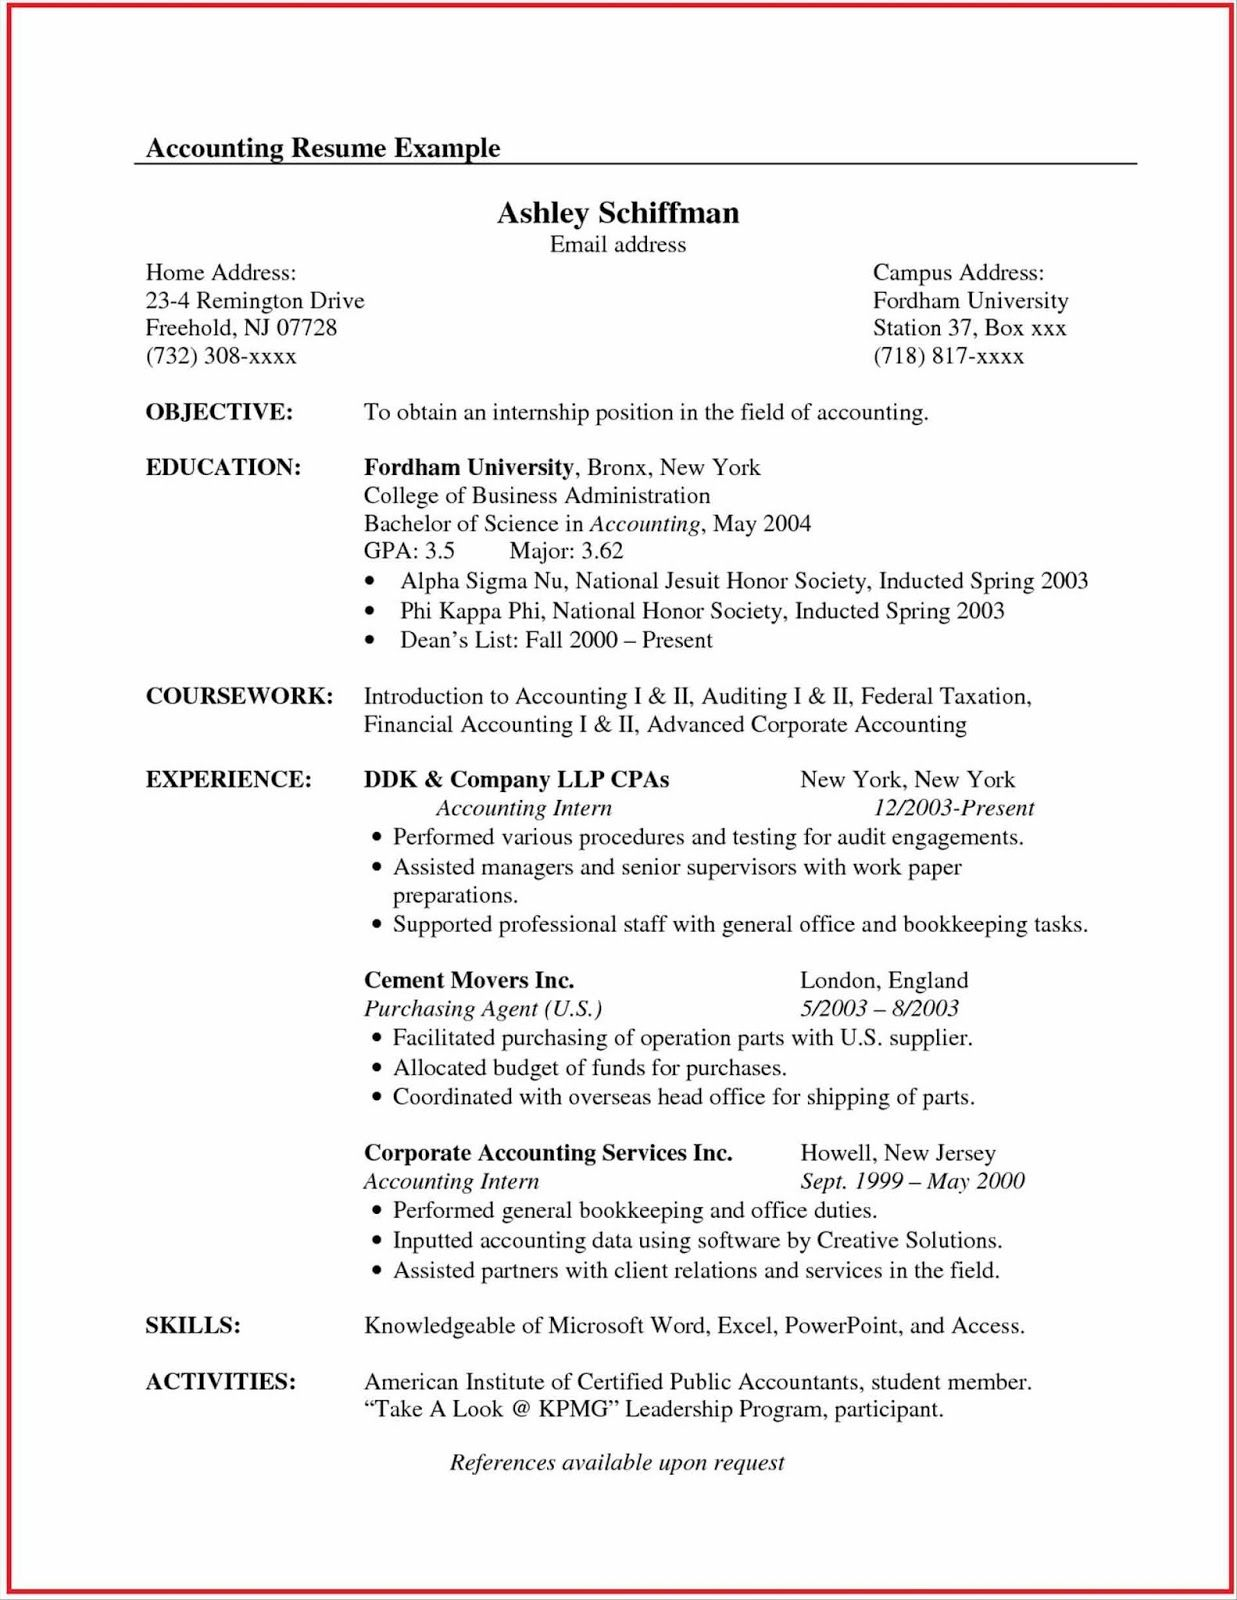 Janitor Resume Objective Janitor Job Objective Resume Resume Objective For A Janitor Resume Objectiv Resume Examples Internship Resume Resume Template Examples